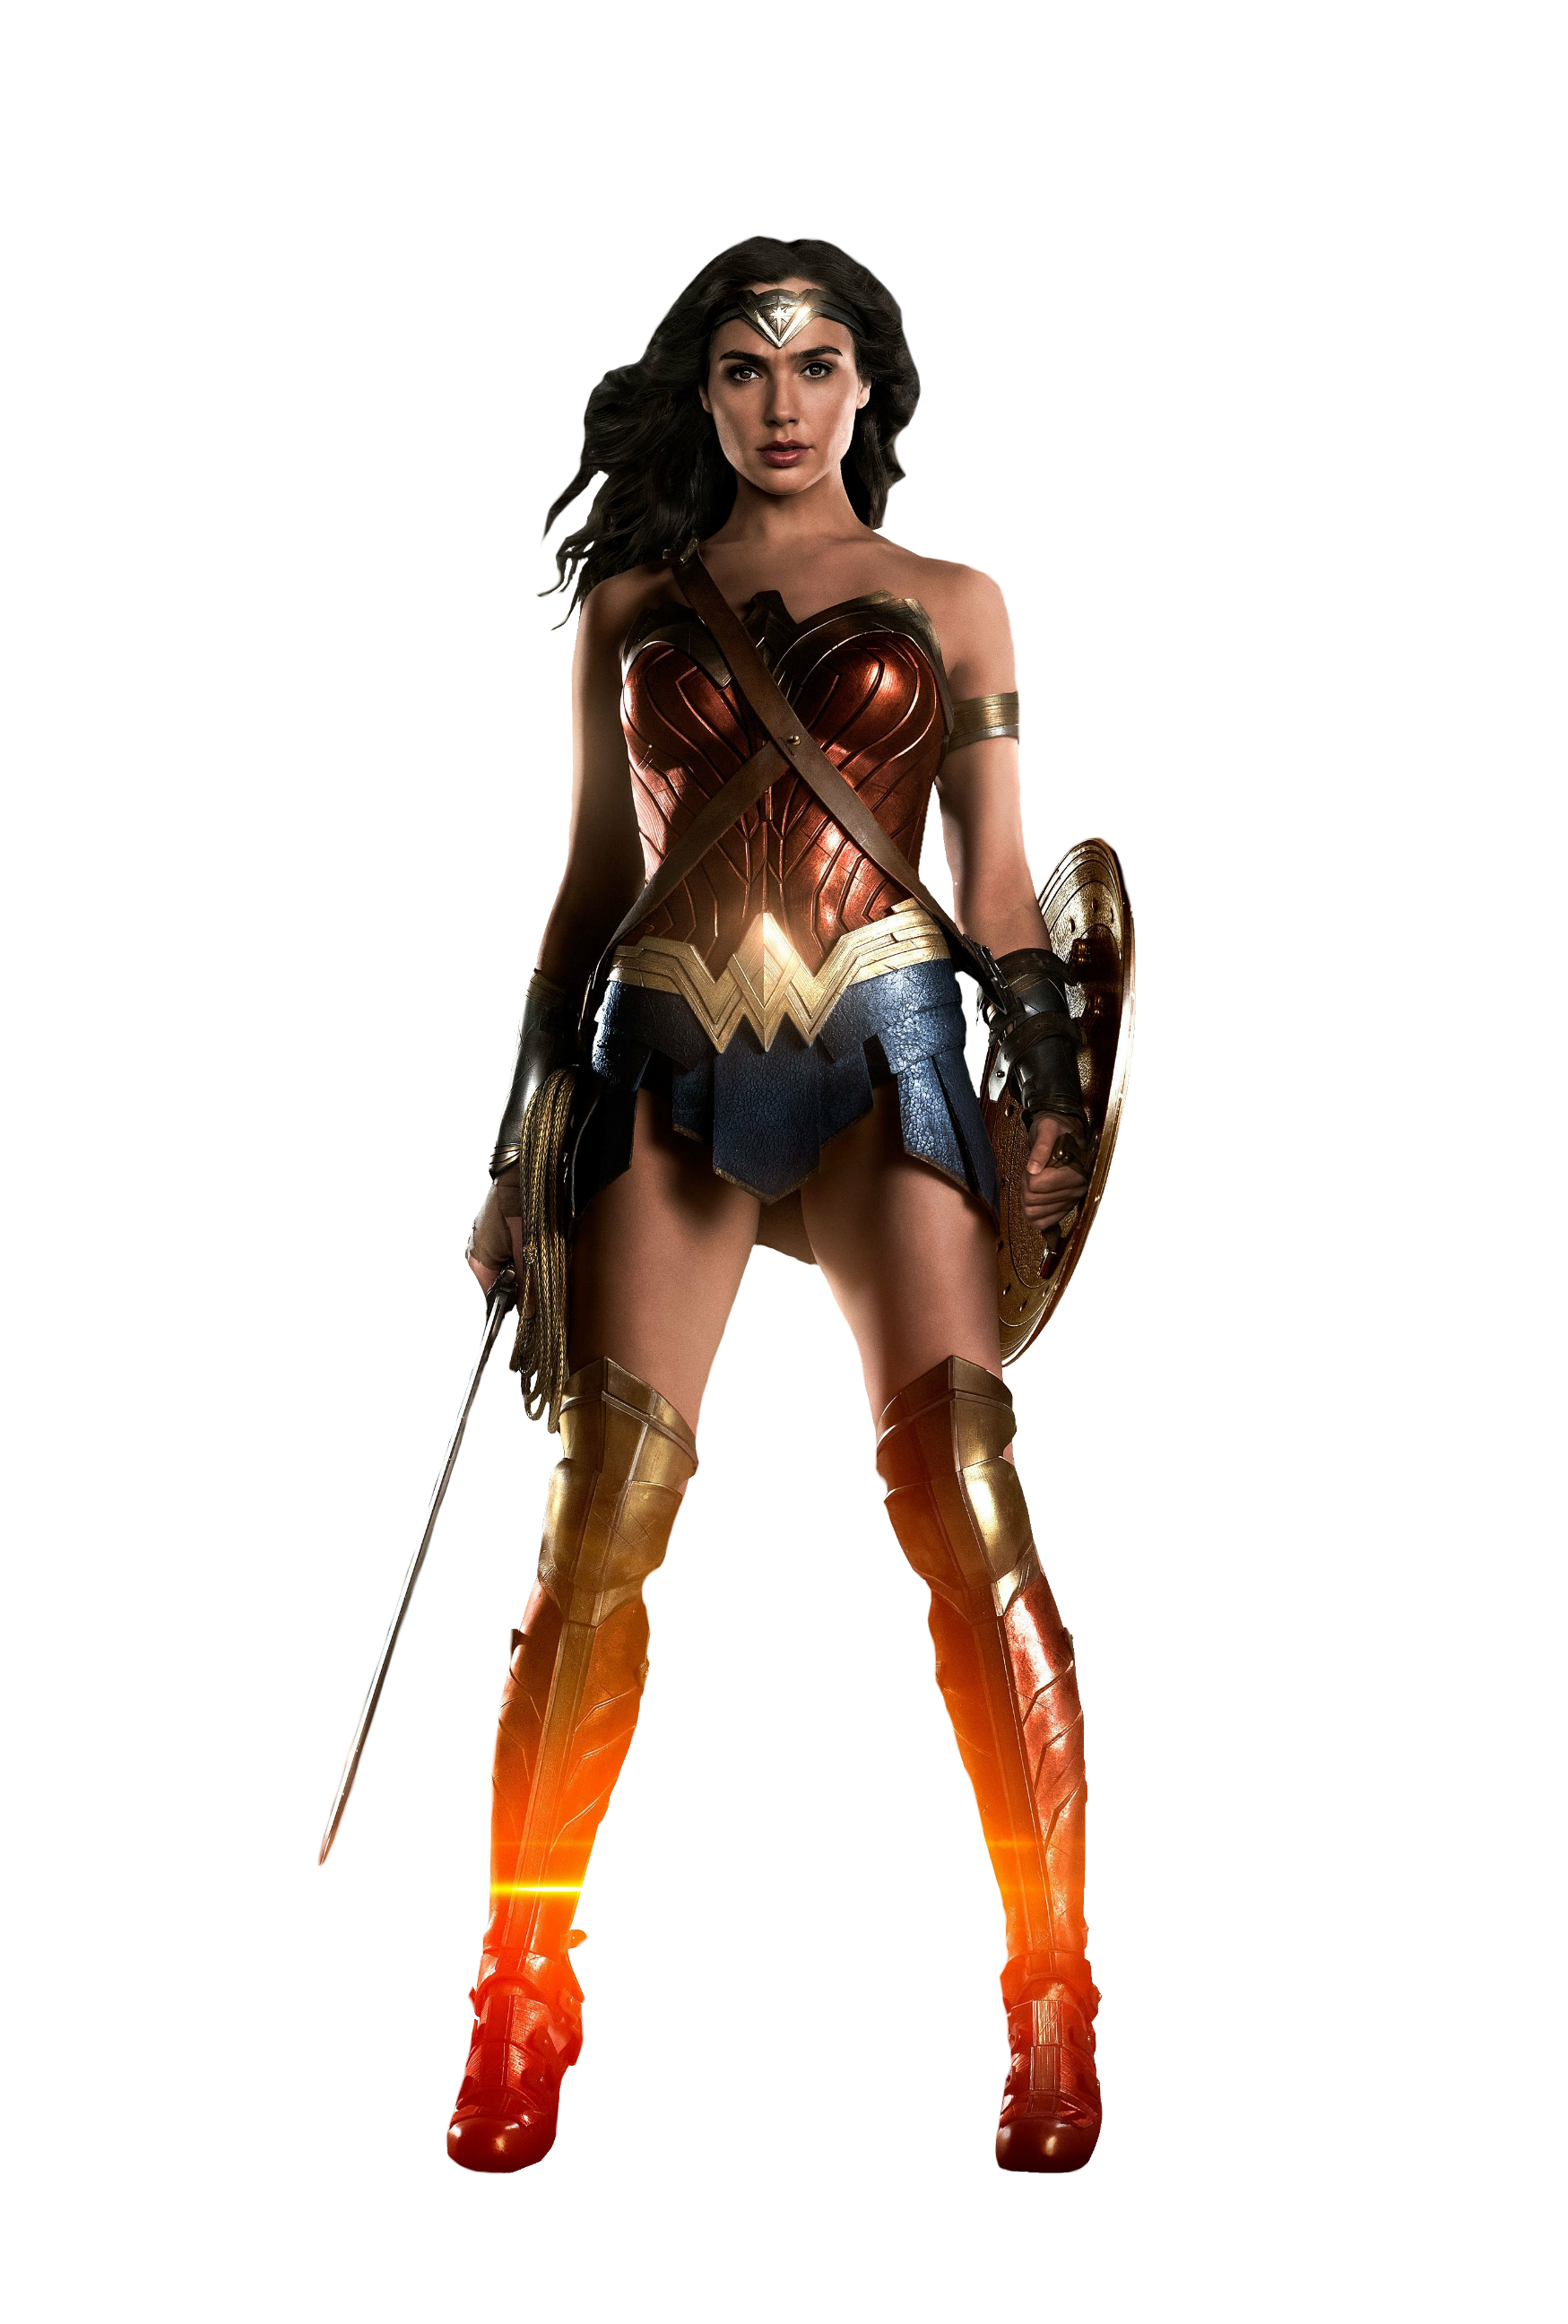 Wonderwoman Gal Gadot Wallpaper By Josefreittas On Deviantart Bathroom Vanities Chandeliers